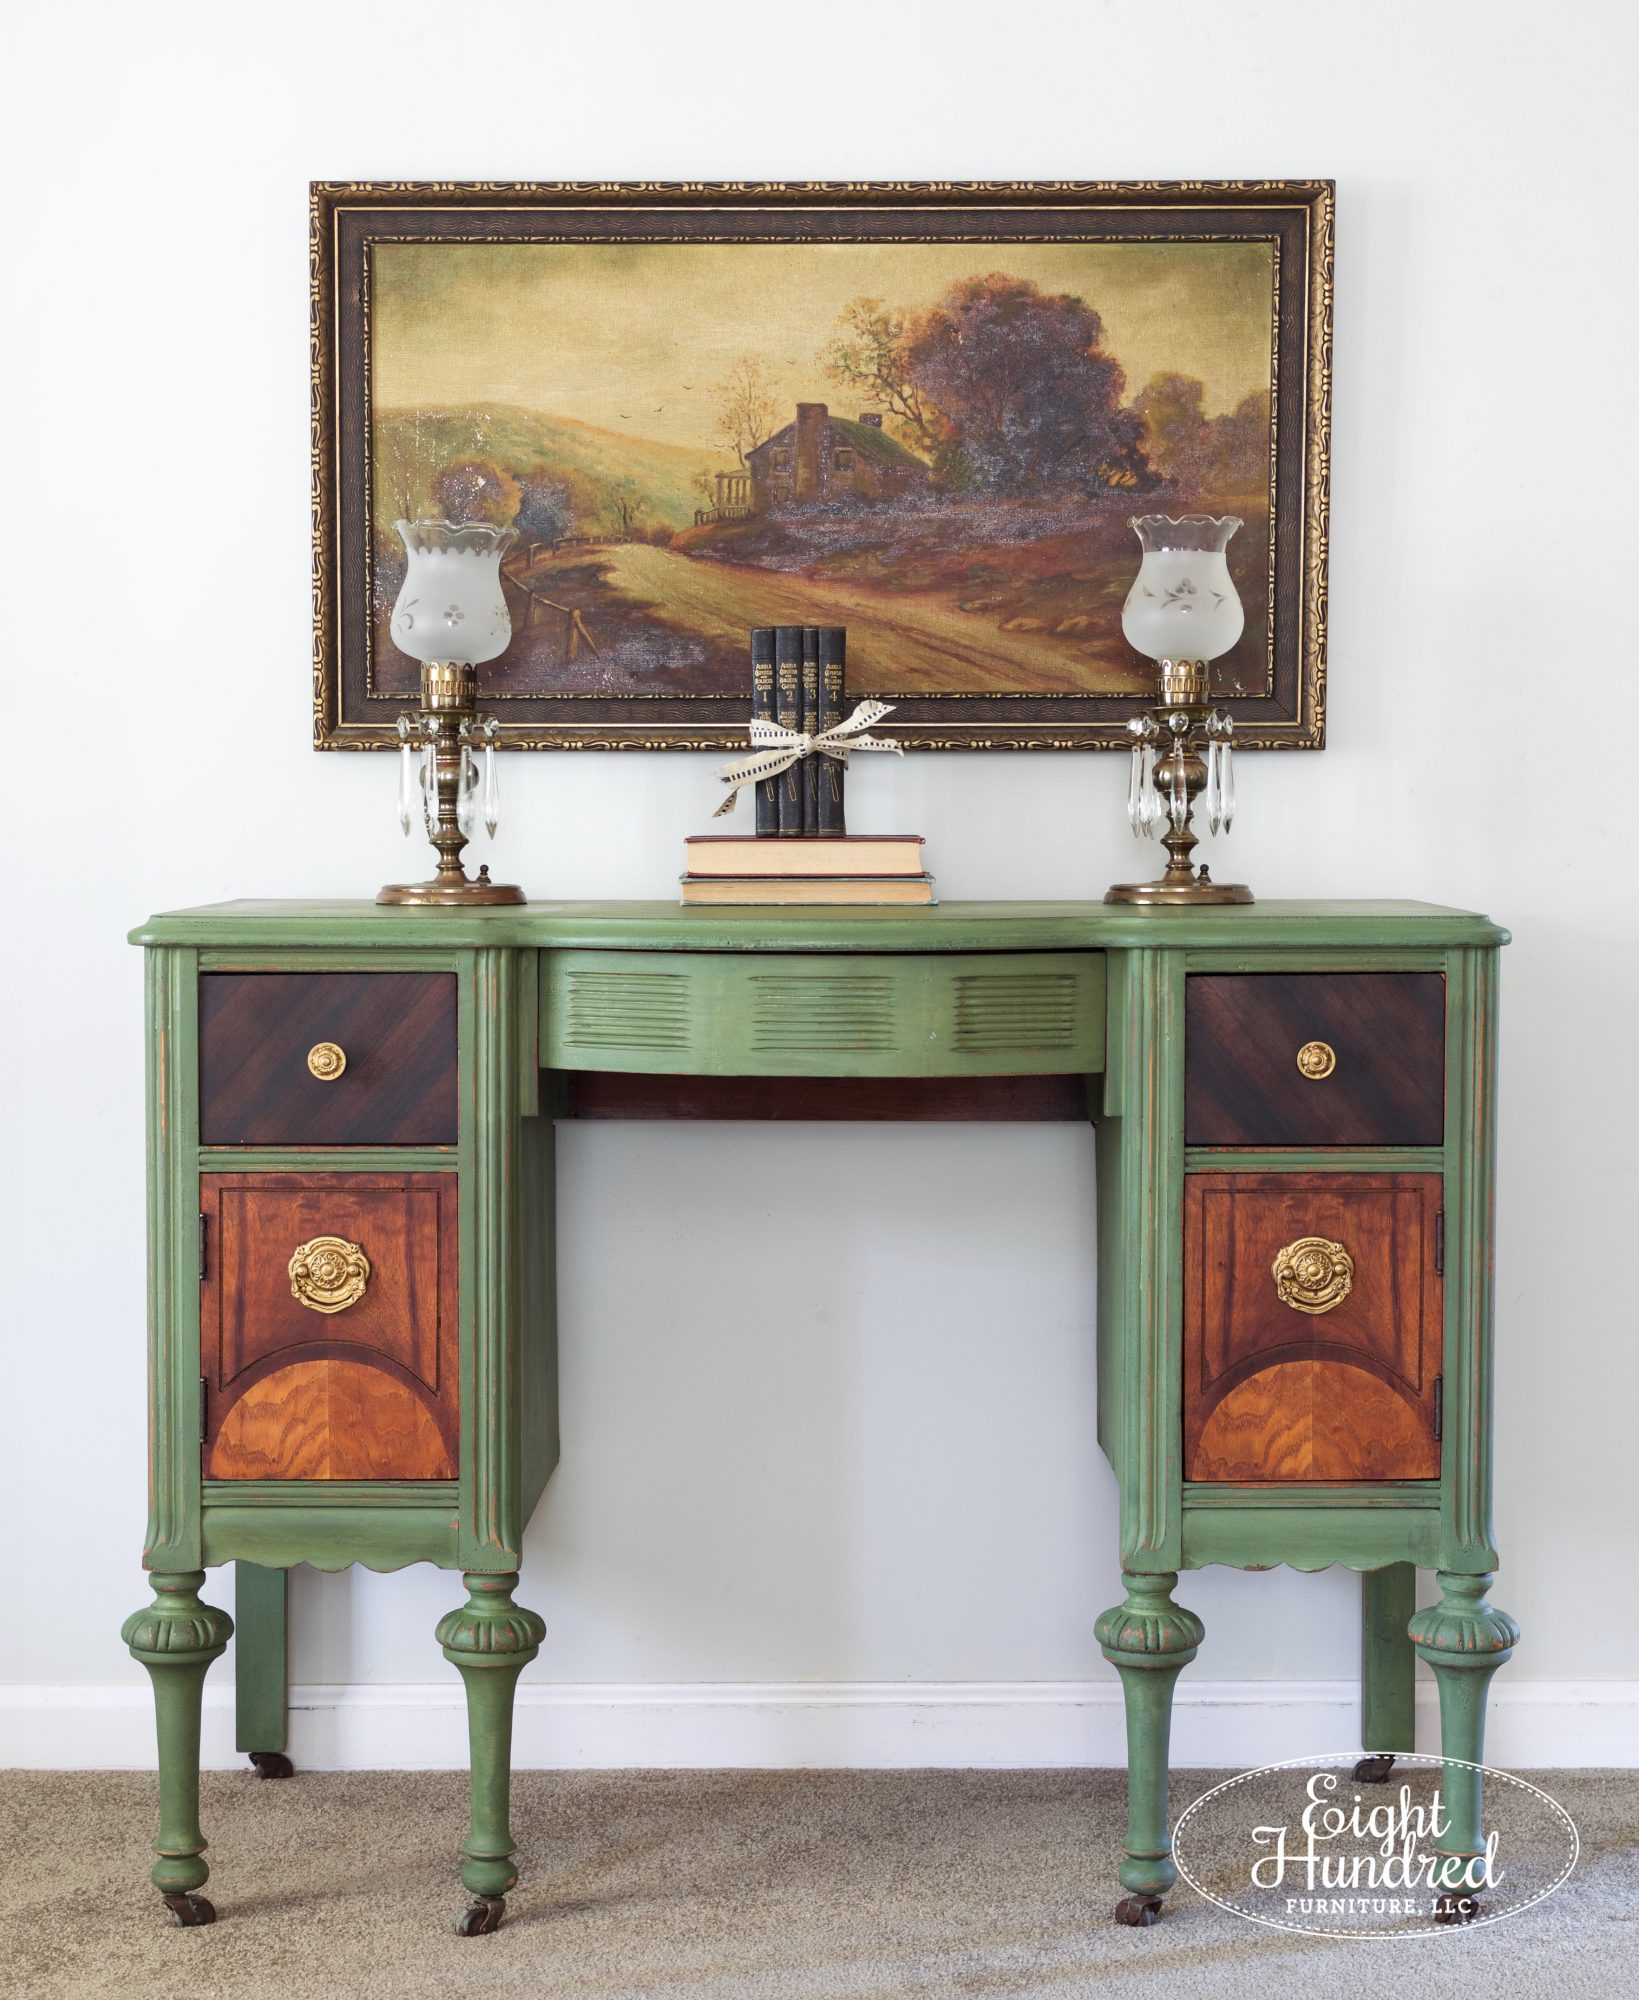 Makeup vanity painted in boxwood by miss mustard seed's milk paint by eight hundred furniture